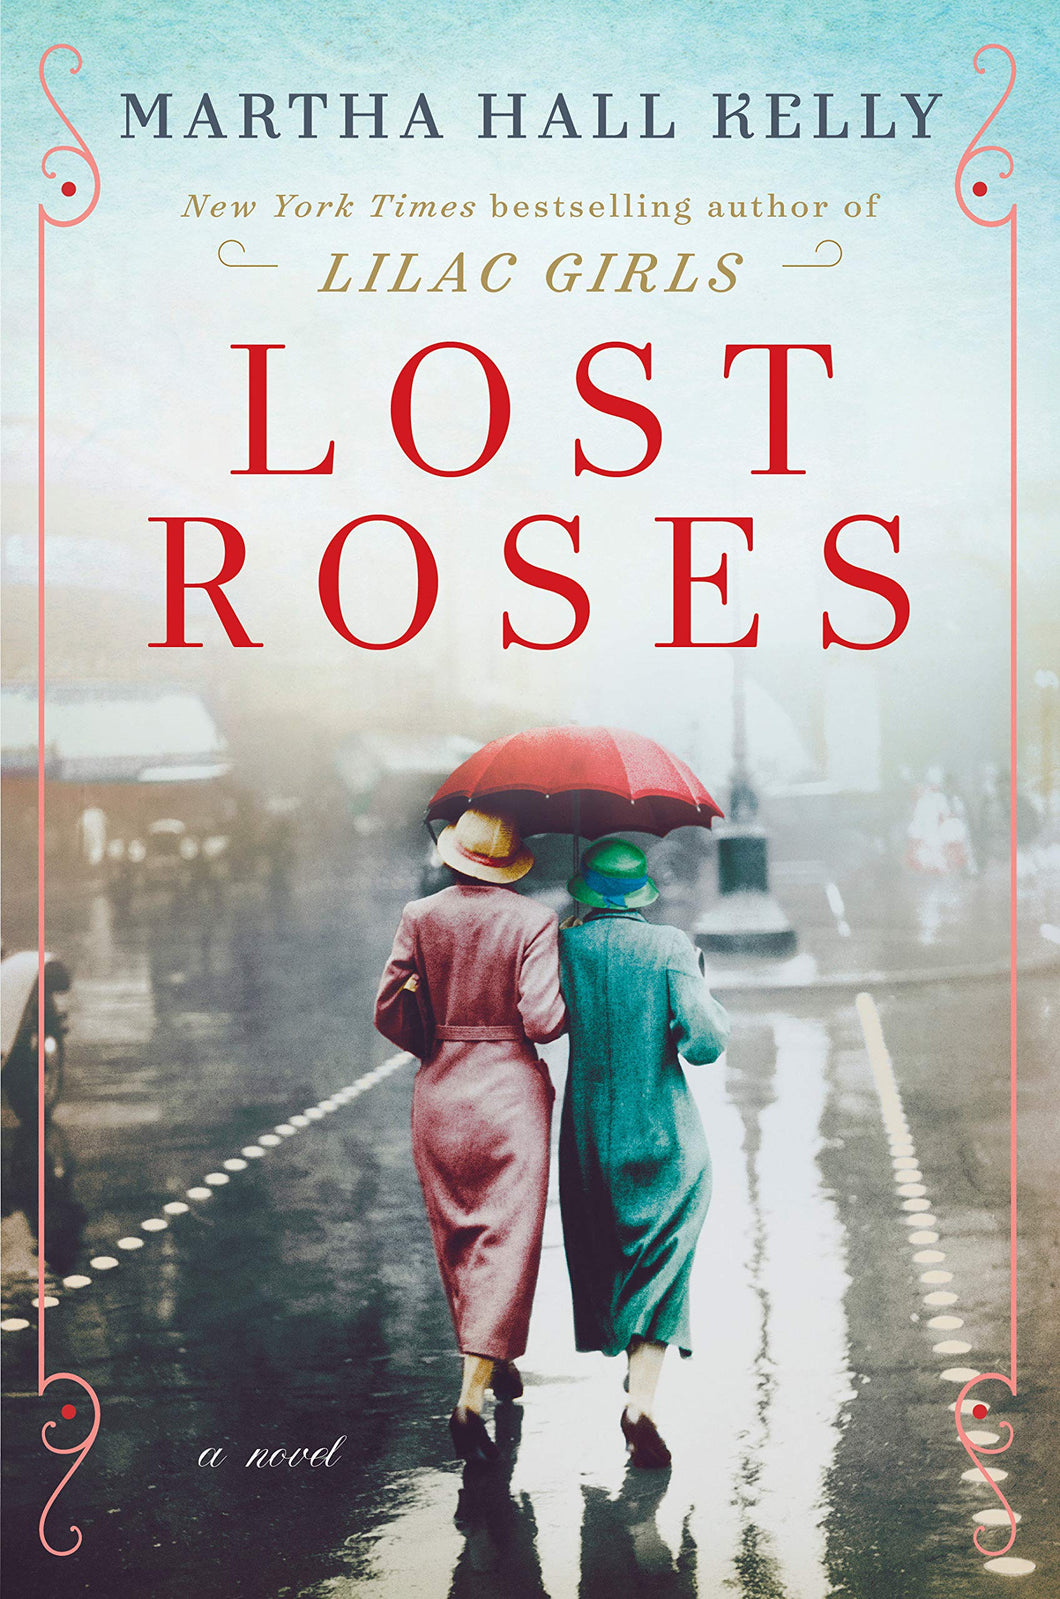 Lost Roses: A Novel (Hardcover)